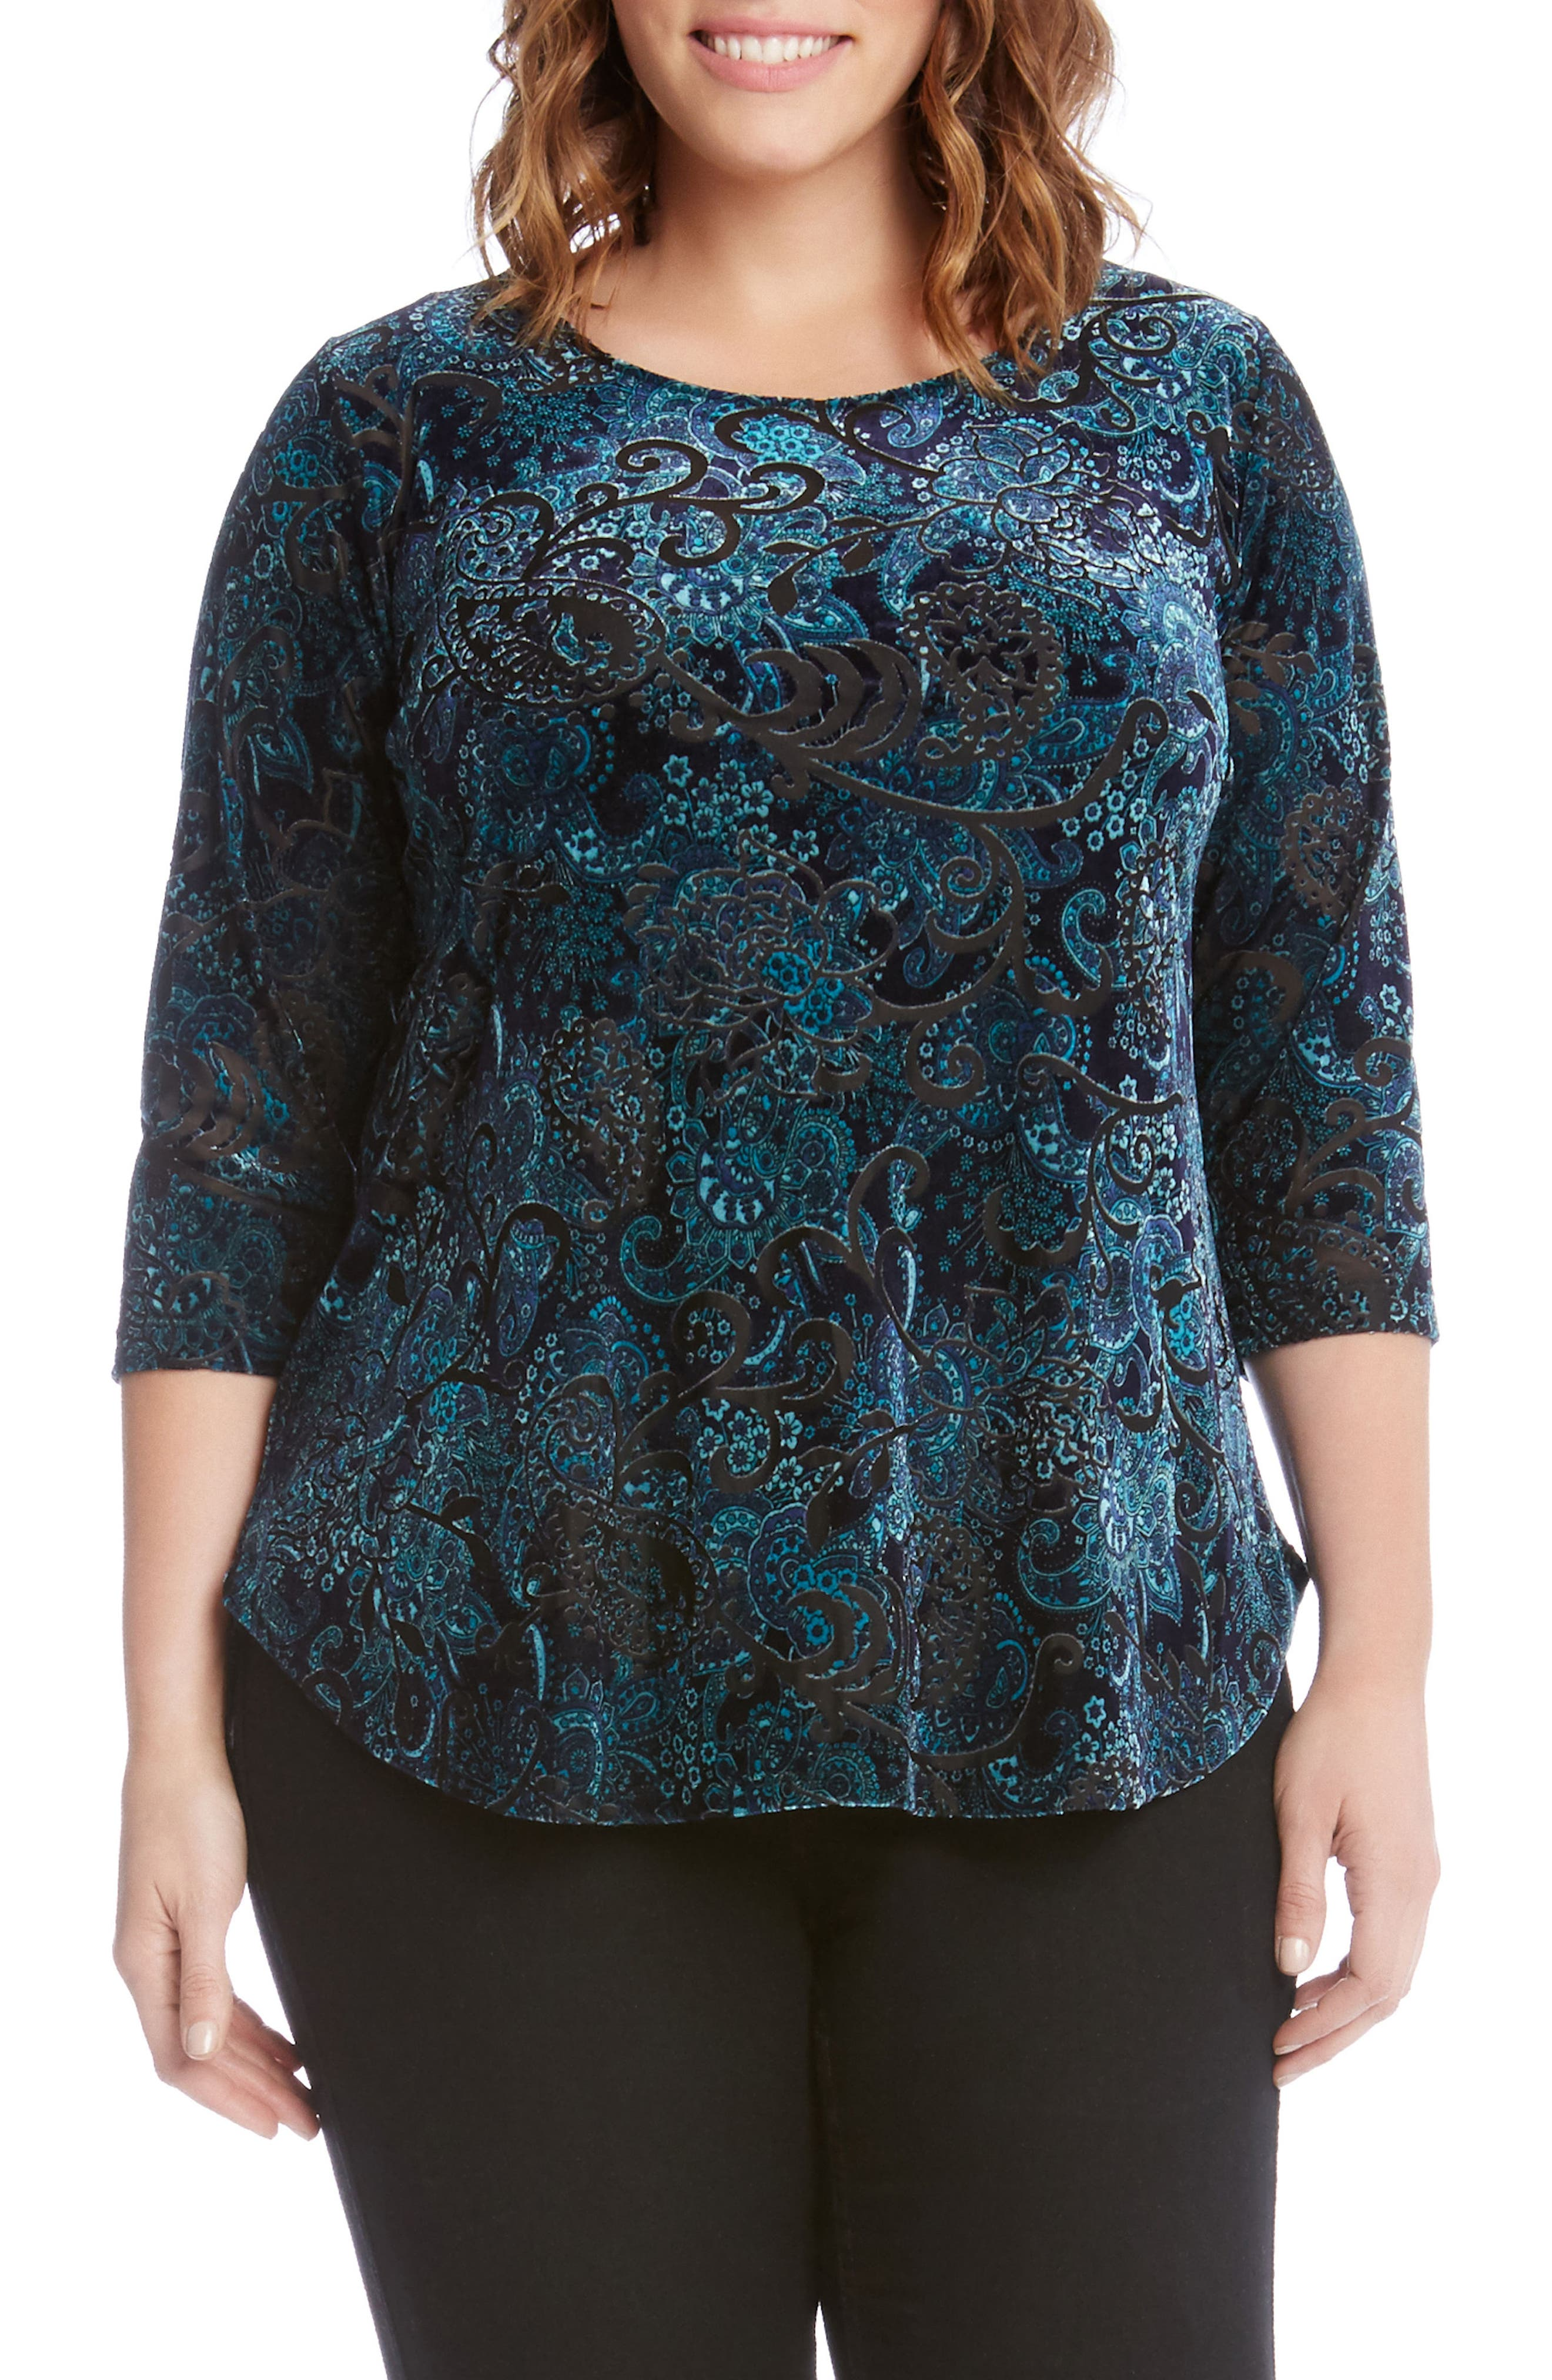 Alternate Image 1 Selected - Karen Kane Velvet Burnout Top (Plus Size)